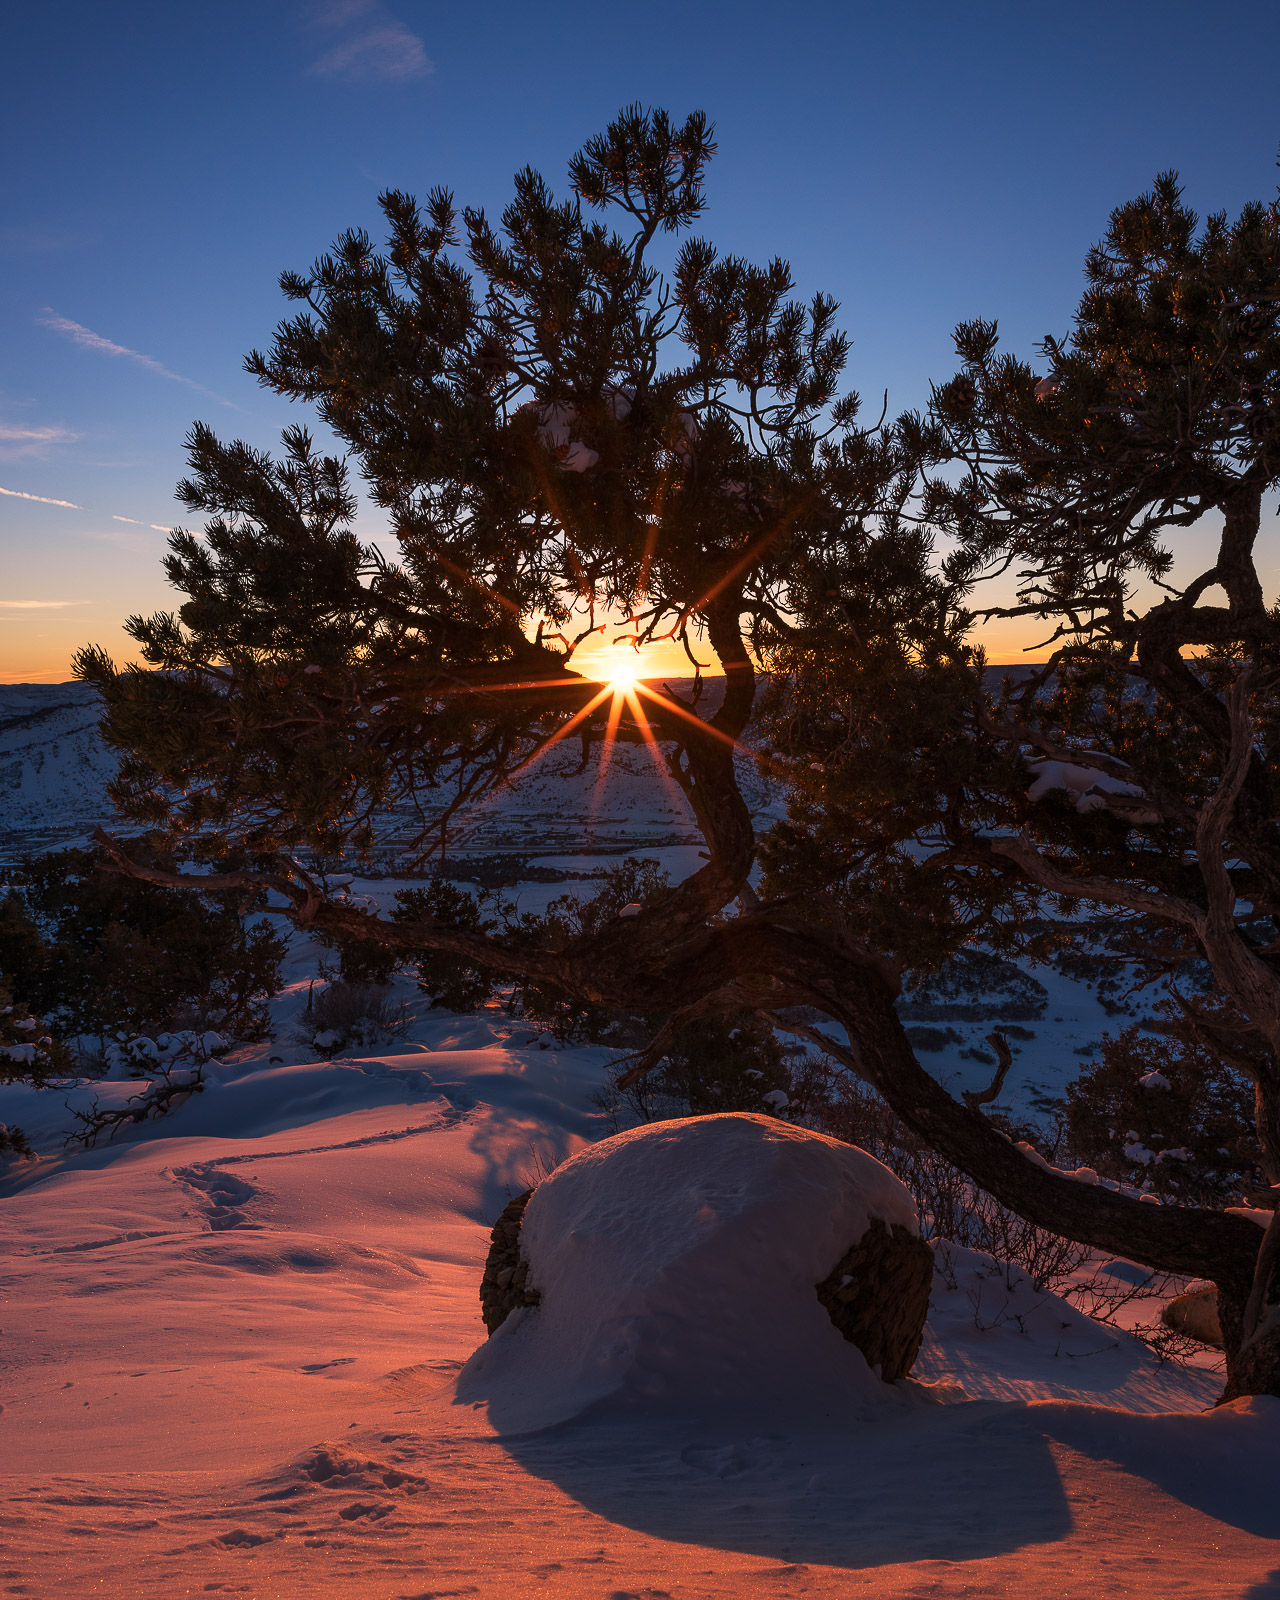 Colorado, Durango, Landscape, Loxia 21, Pinon Tree, Raider Ridge, Snow, Sony A7RII, Sony Artisan, Sunset, Sunstar, Winter, photo